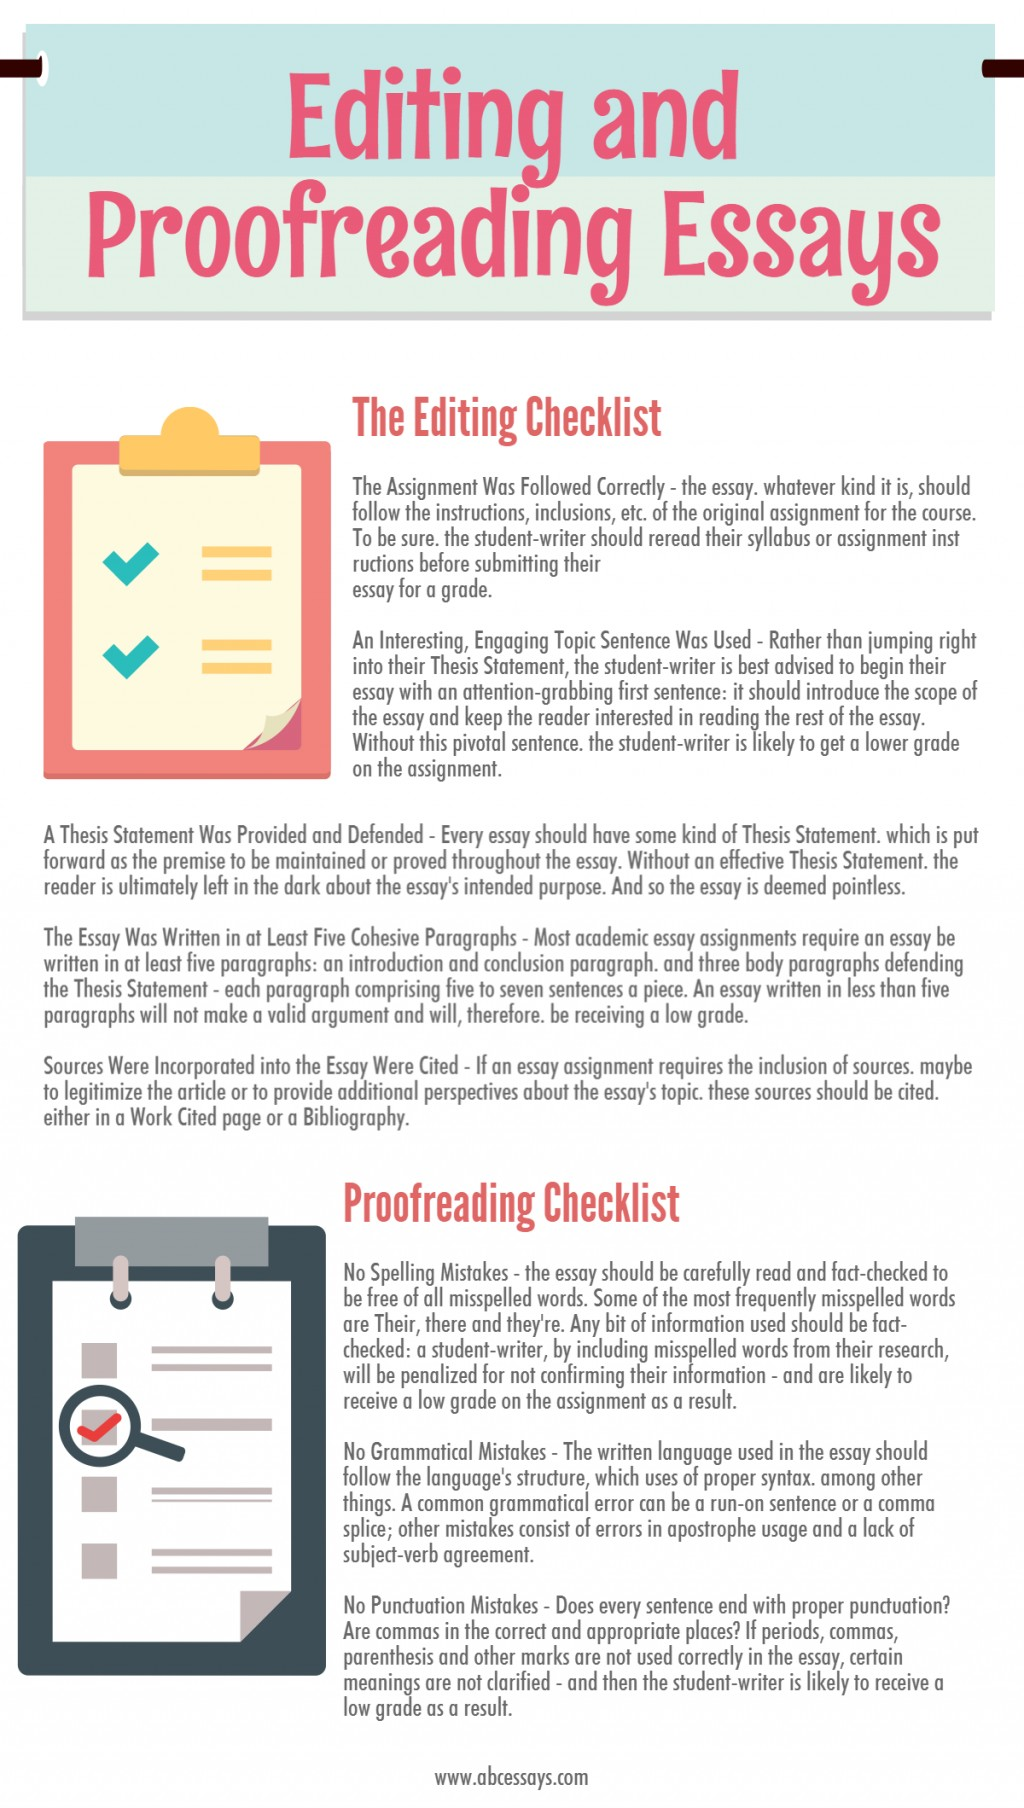 014 Editing Anding Essays Essay Example Unique Proofread Proofreading Service Website University Large